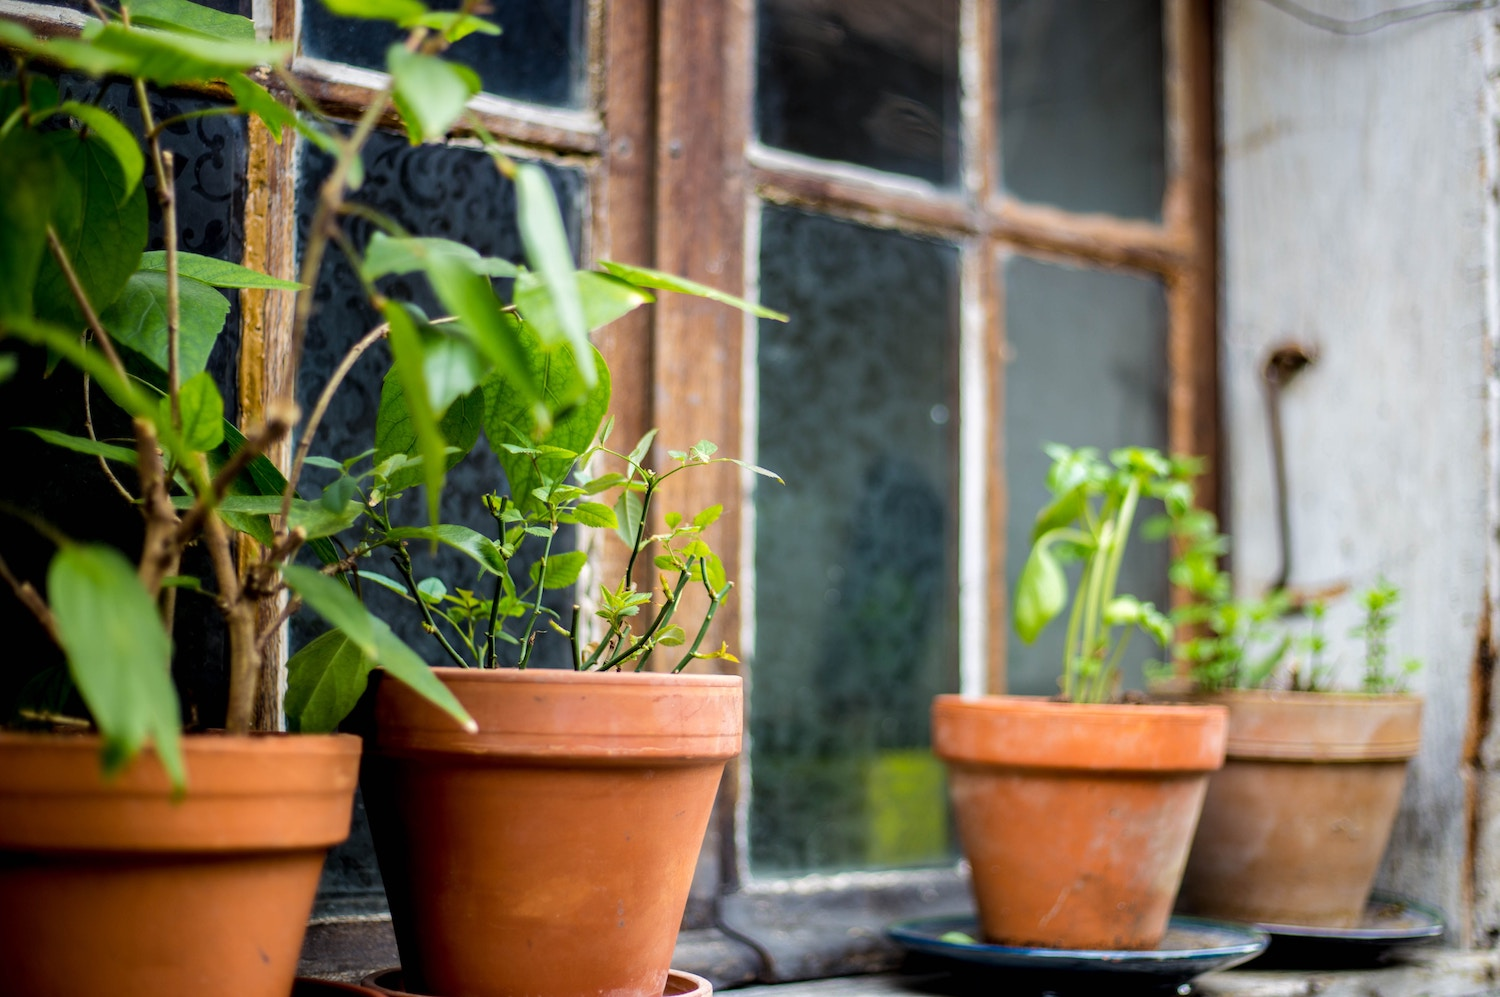 How To Grow Culinary Herbs Indoors During The Winter | Herbal Academy |  Would You Like